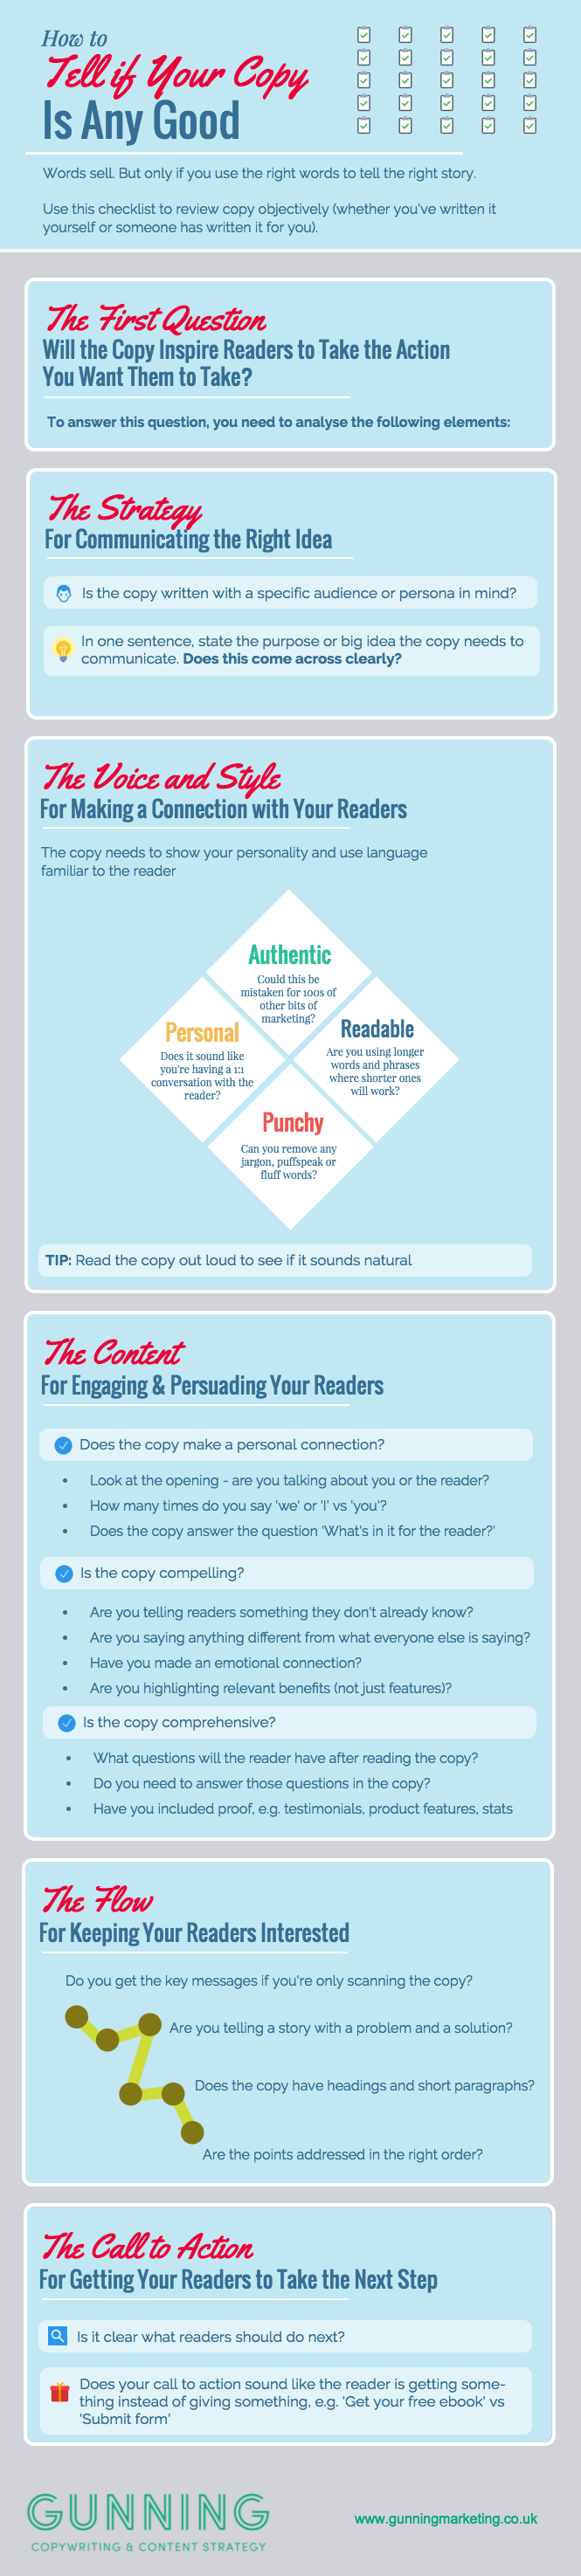 Is_your_copy_any_good_infographic